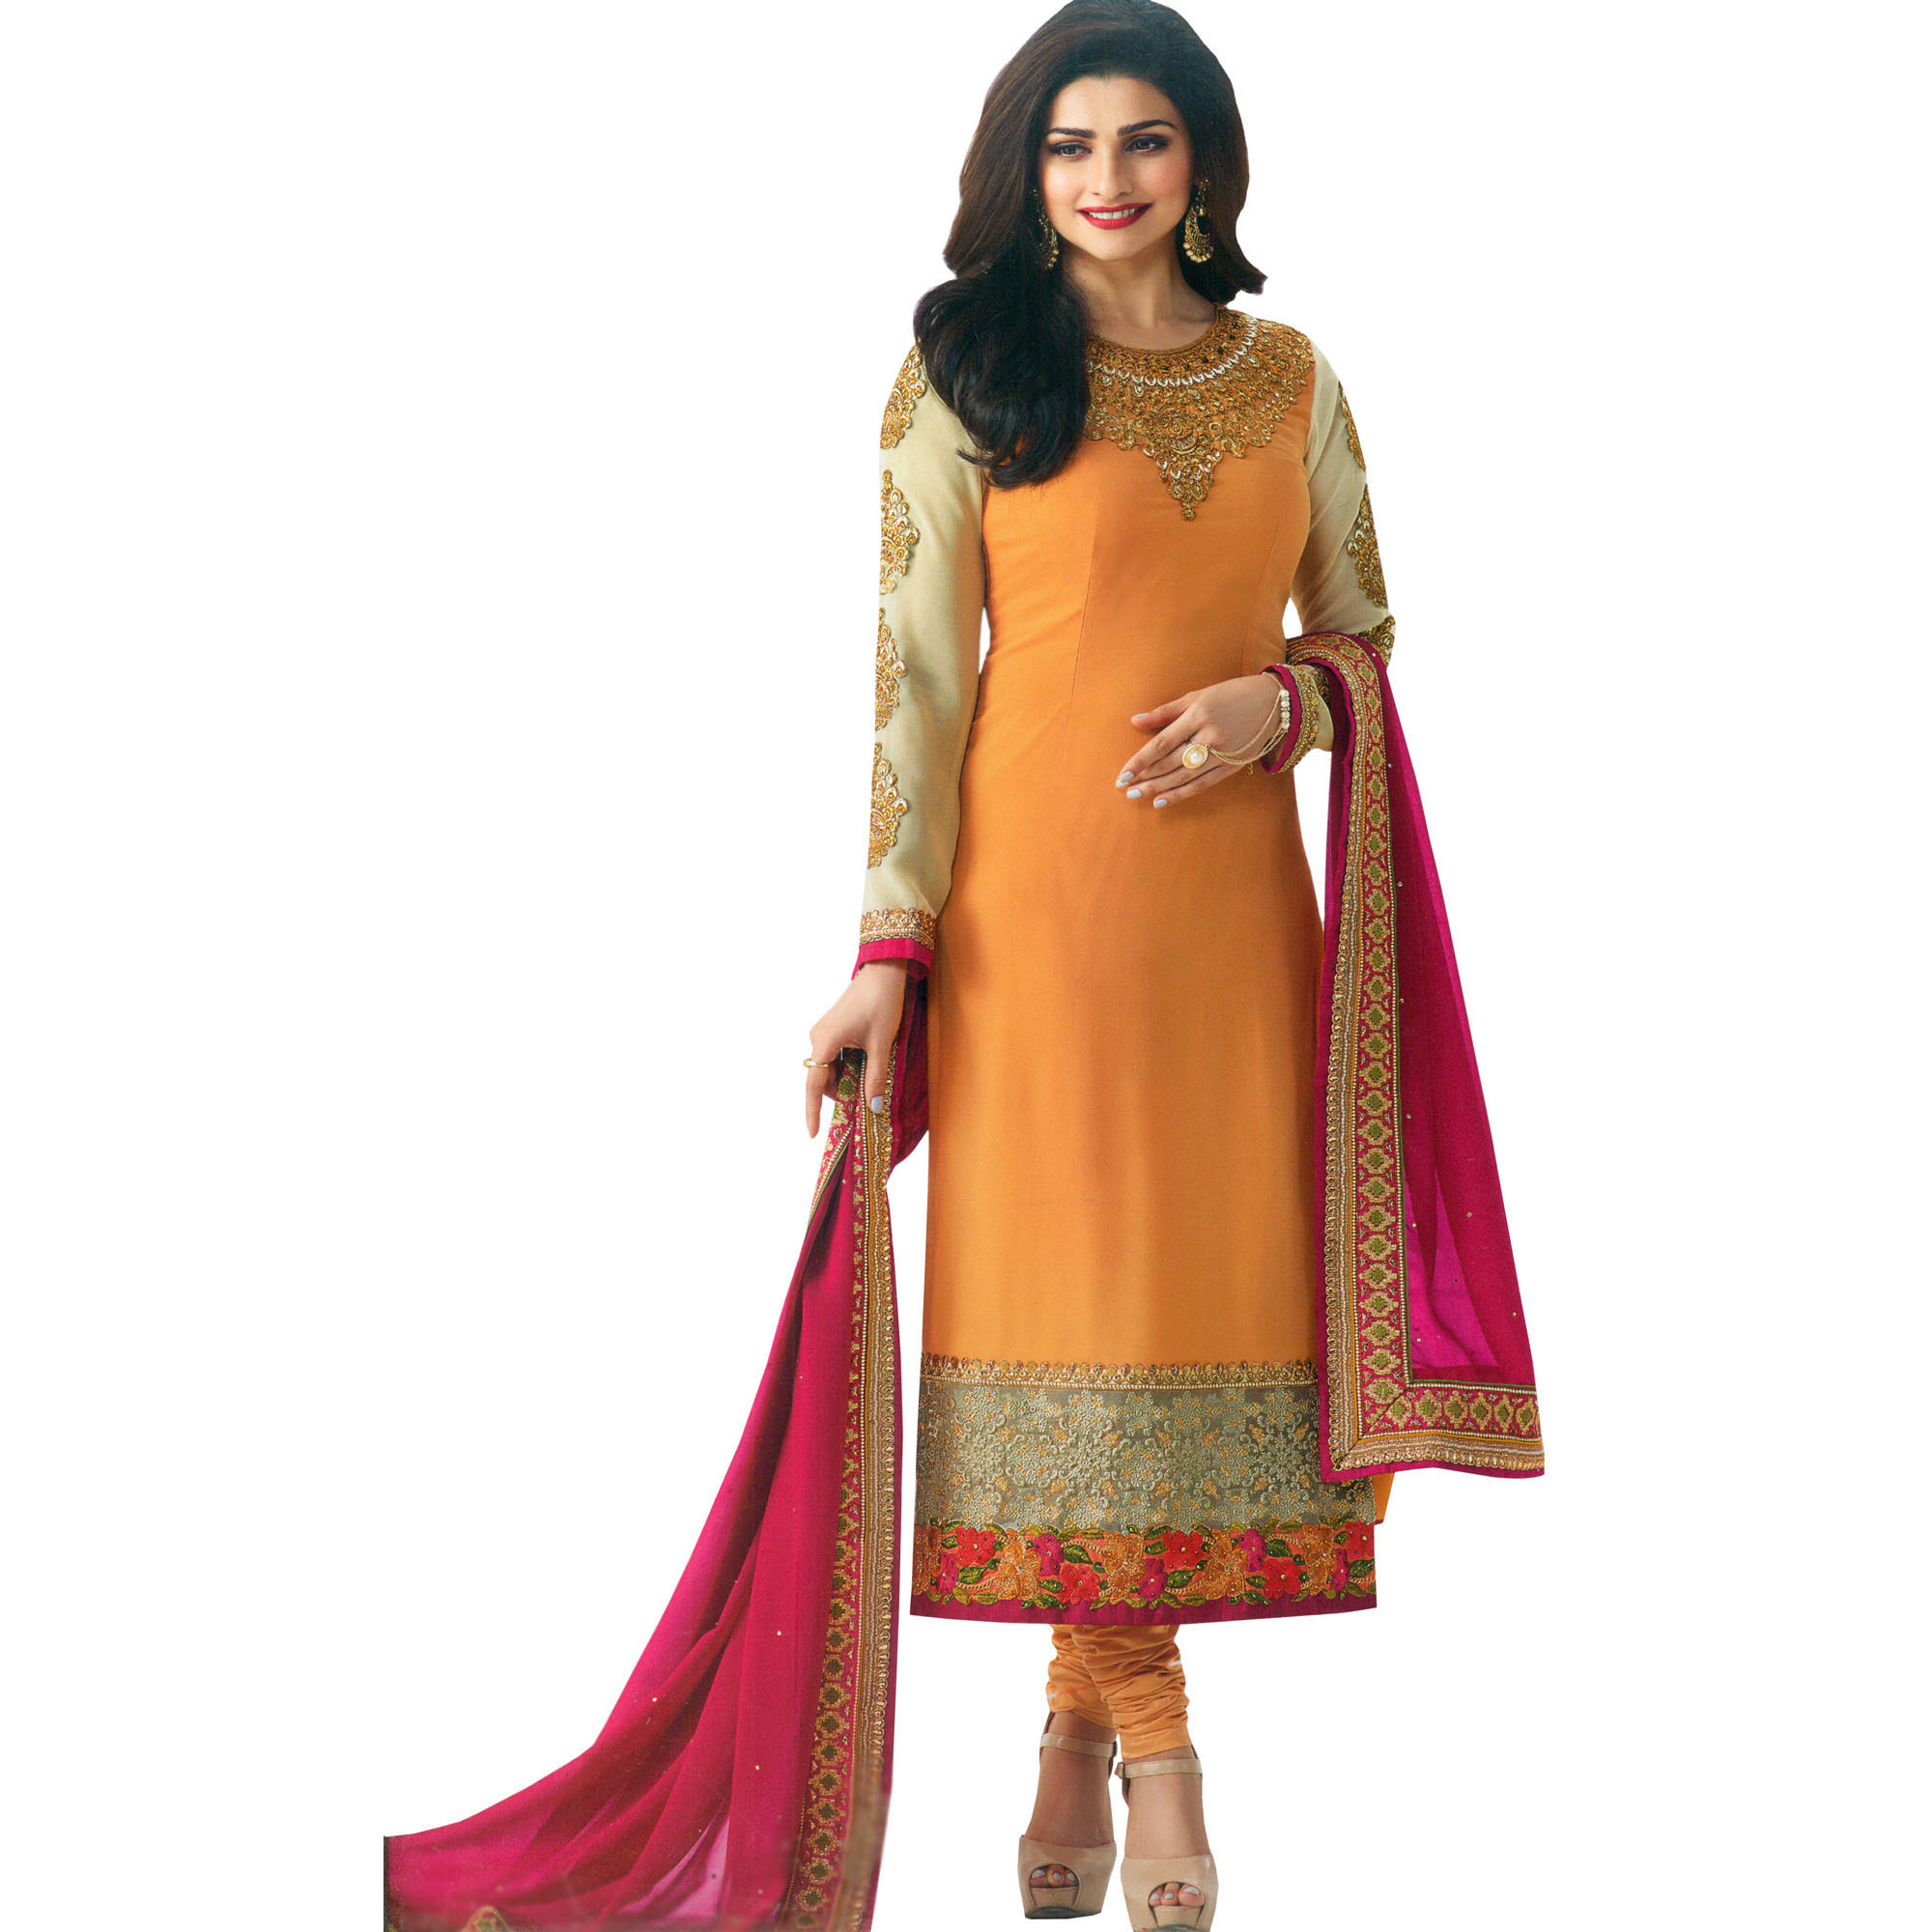 Marigold and Pink Designer Long Choodidaar Kameez Suit with Embroidery and Crystals